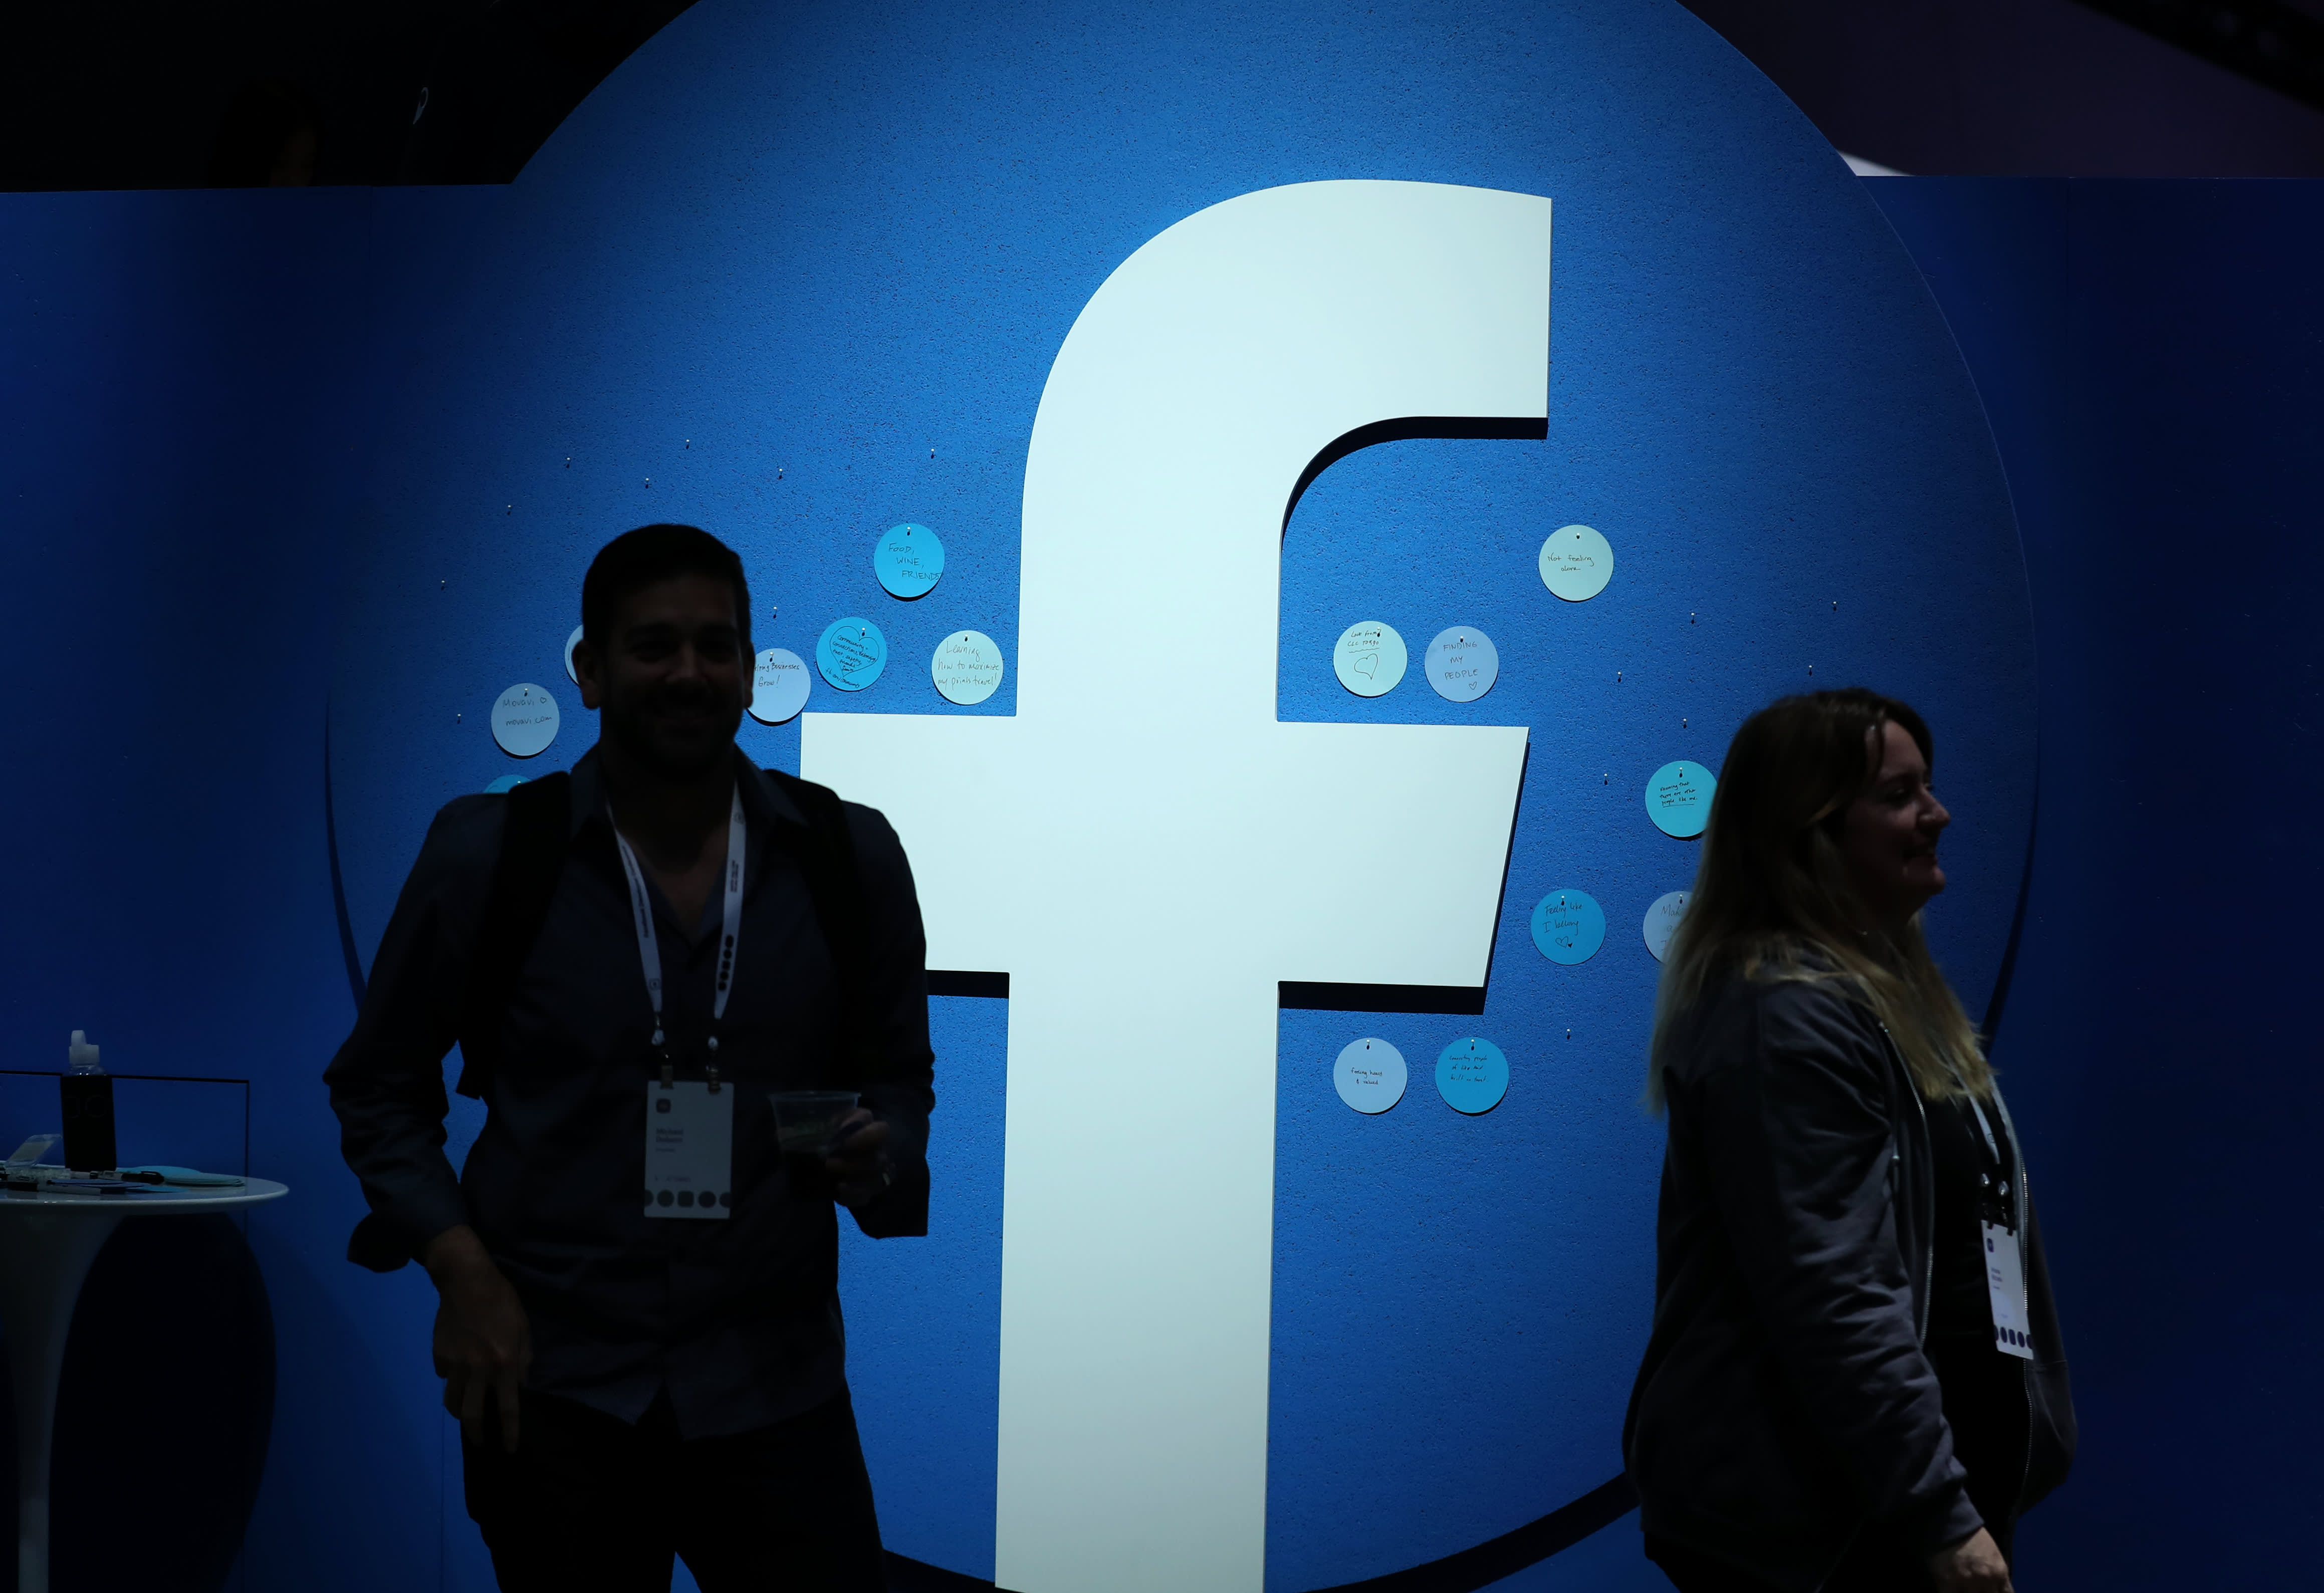 Stock market live updates: Stocks fall, Facebook is biggest loser, GDP not great, Microsoft jumps